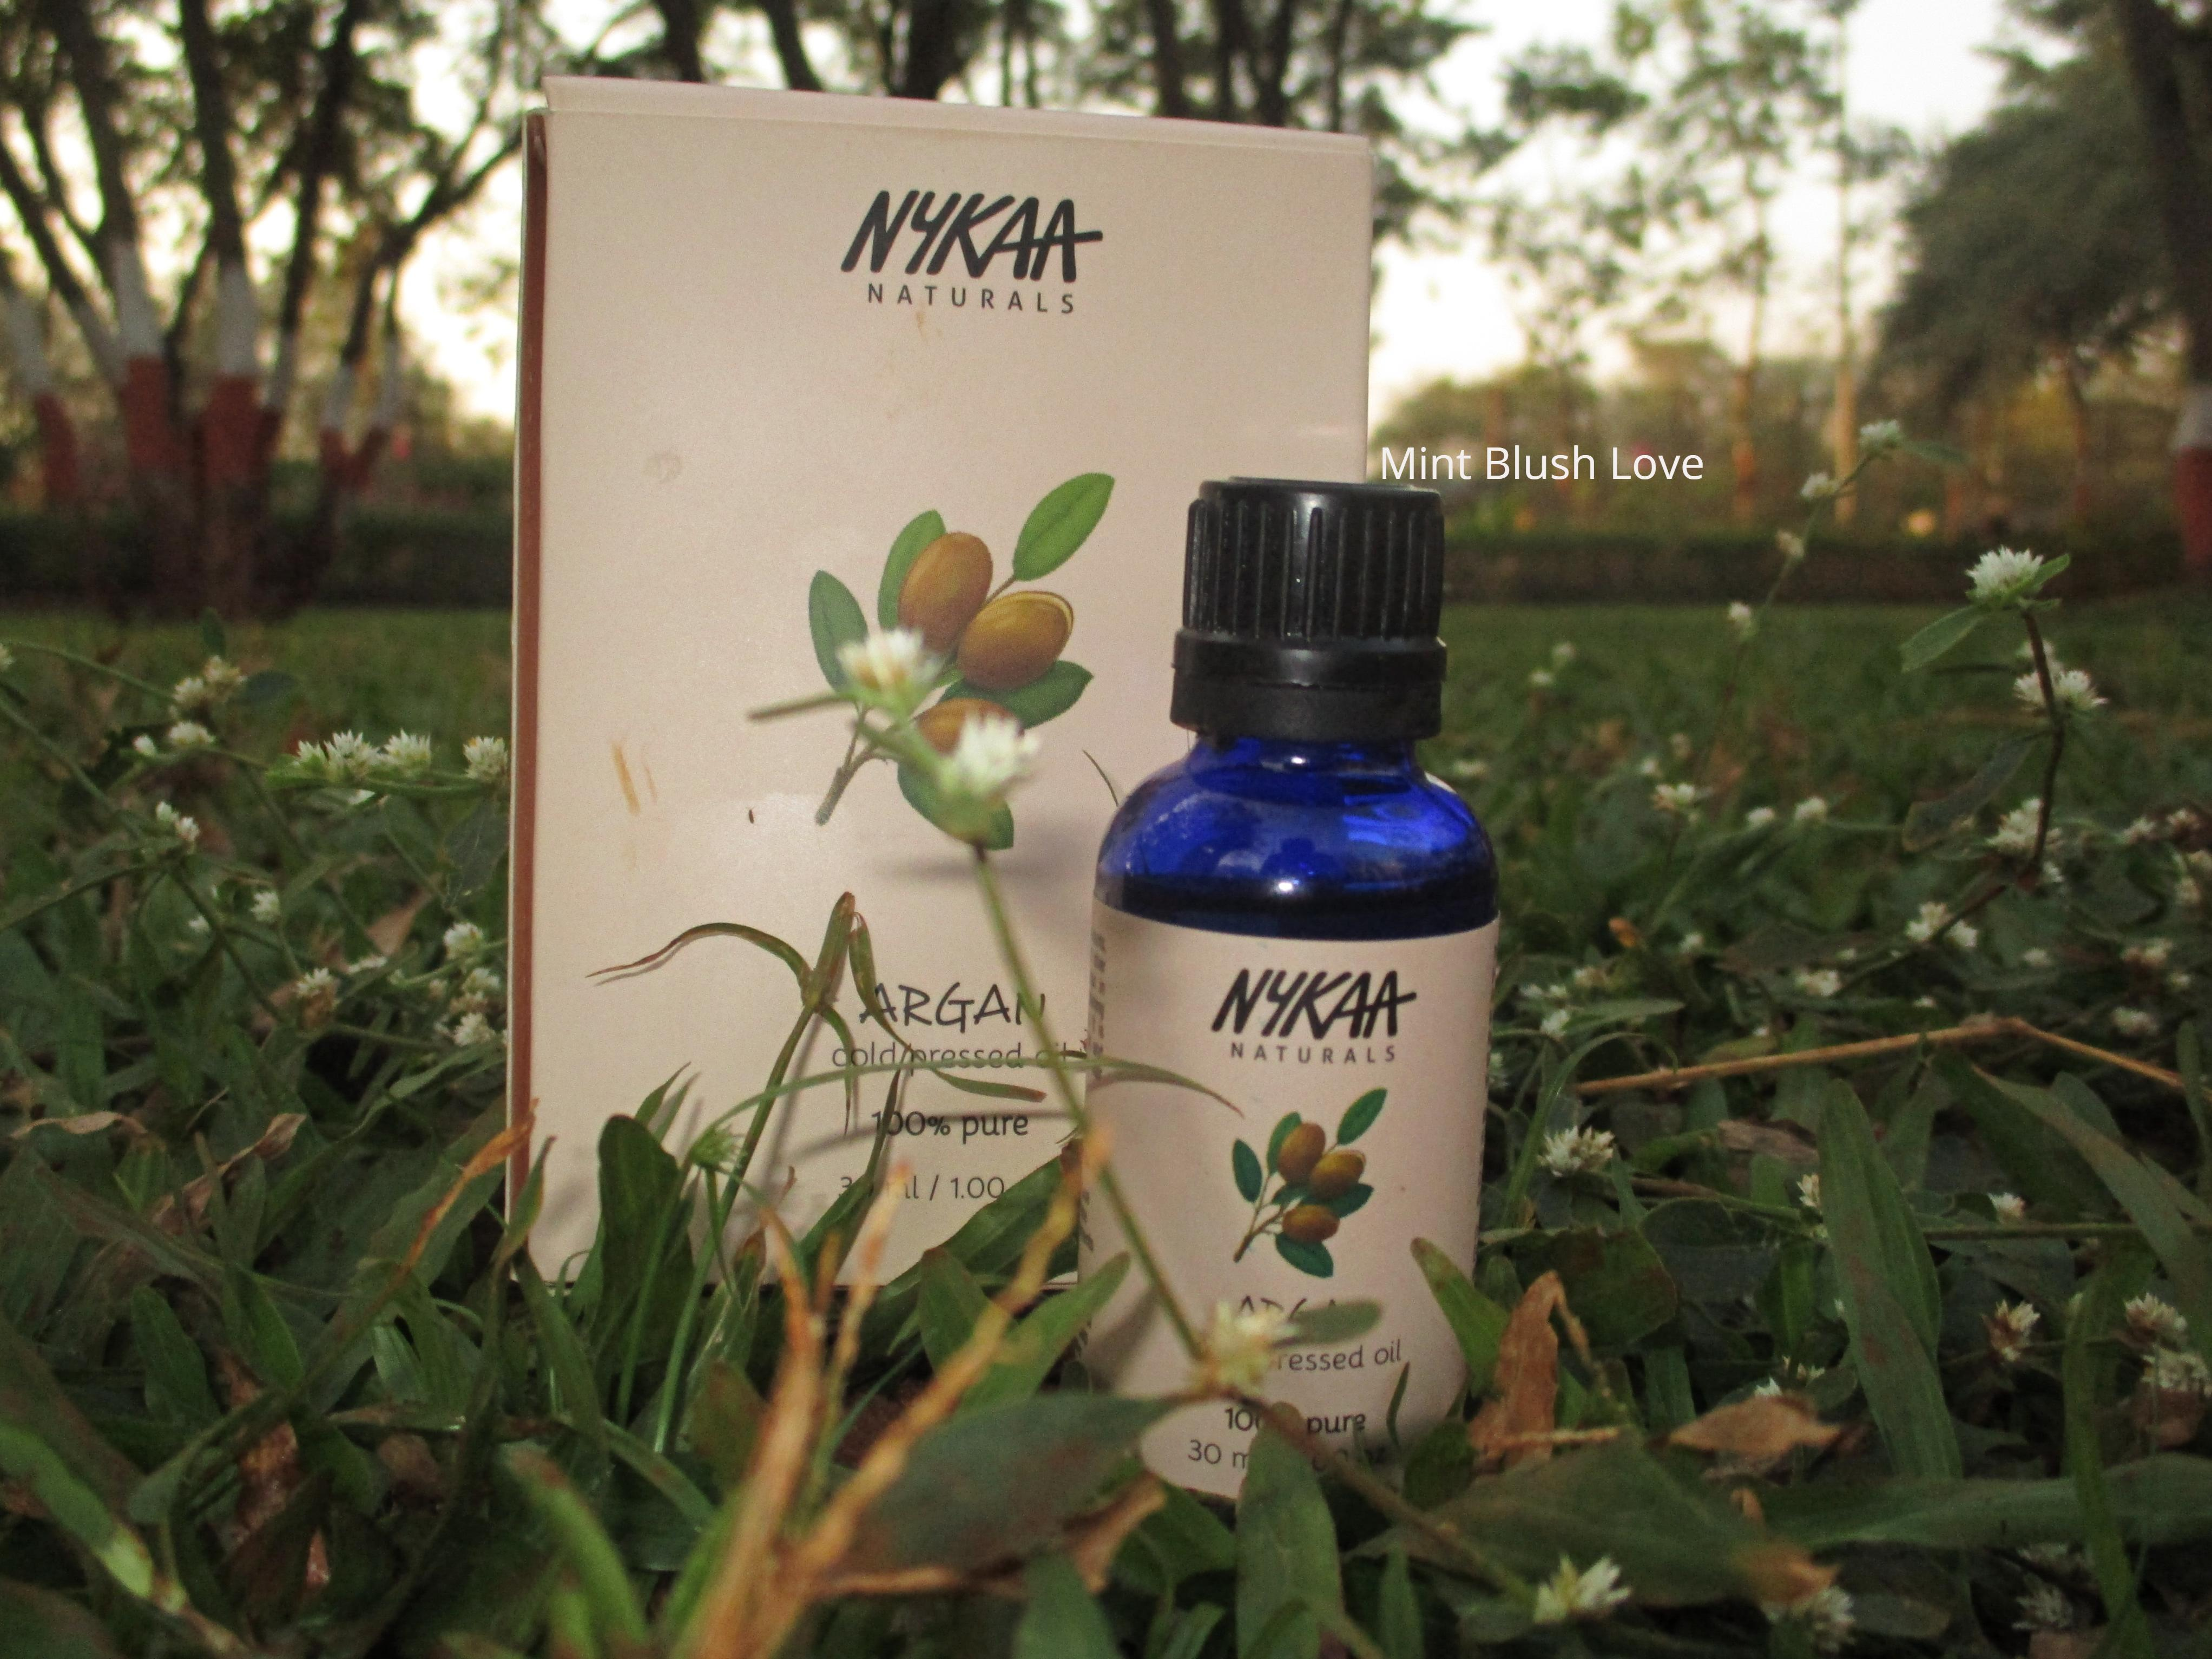 Affordable argan oil India review, How to use argan oil India